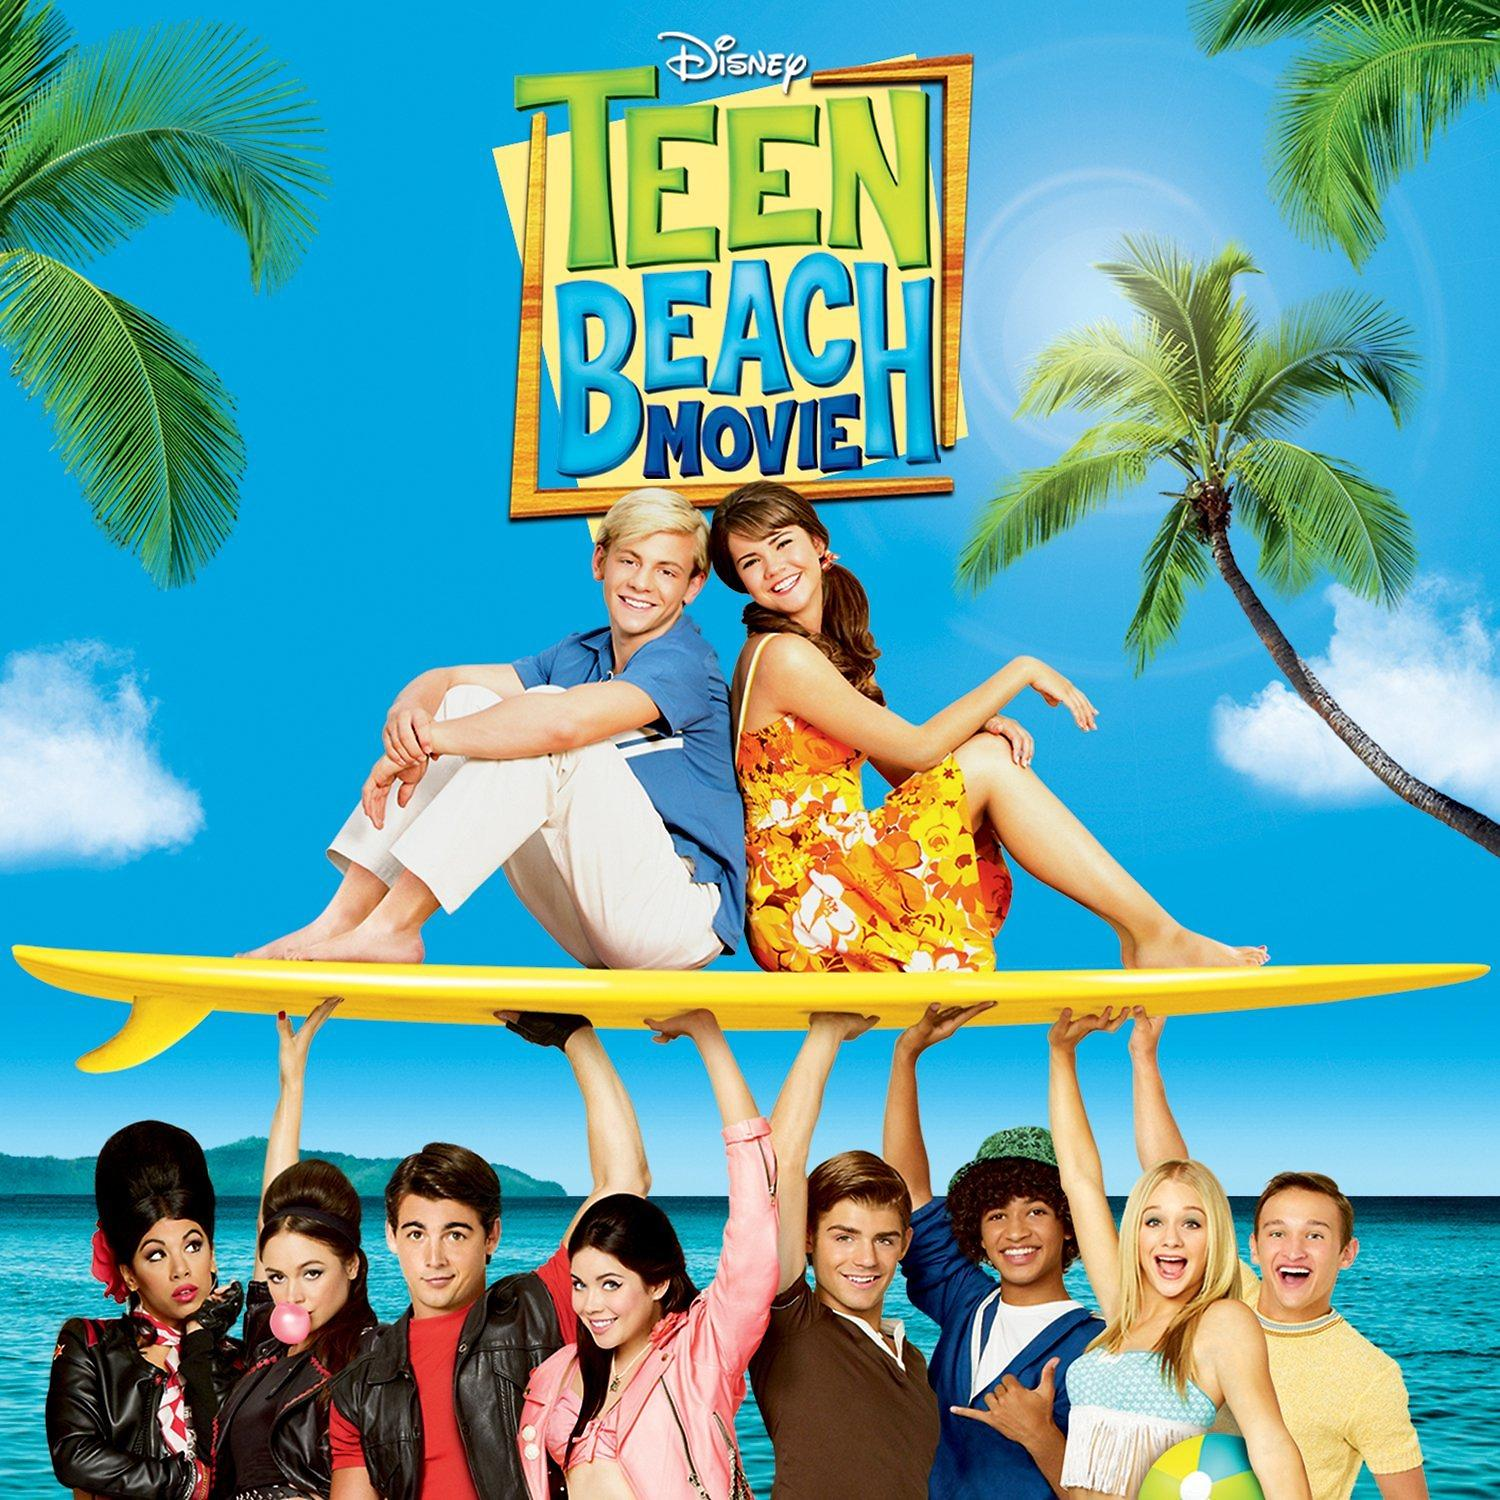 necked pictures of teen beach movie